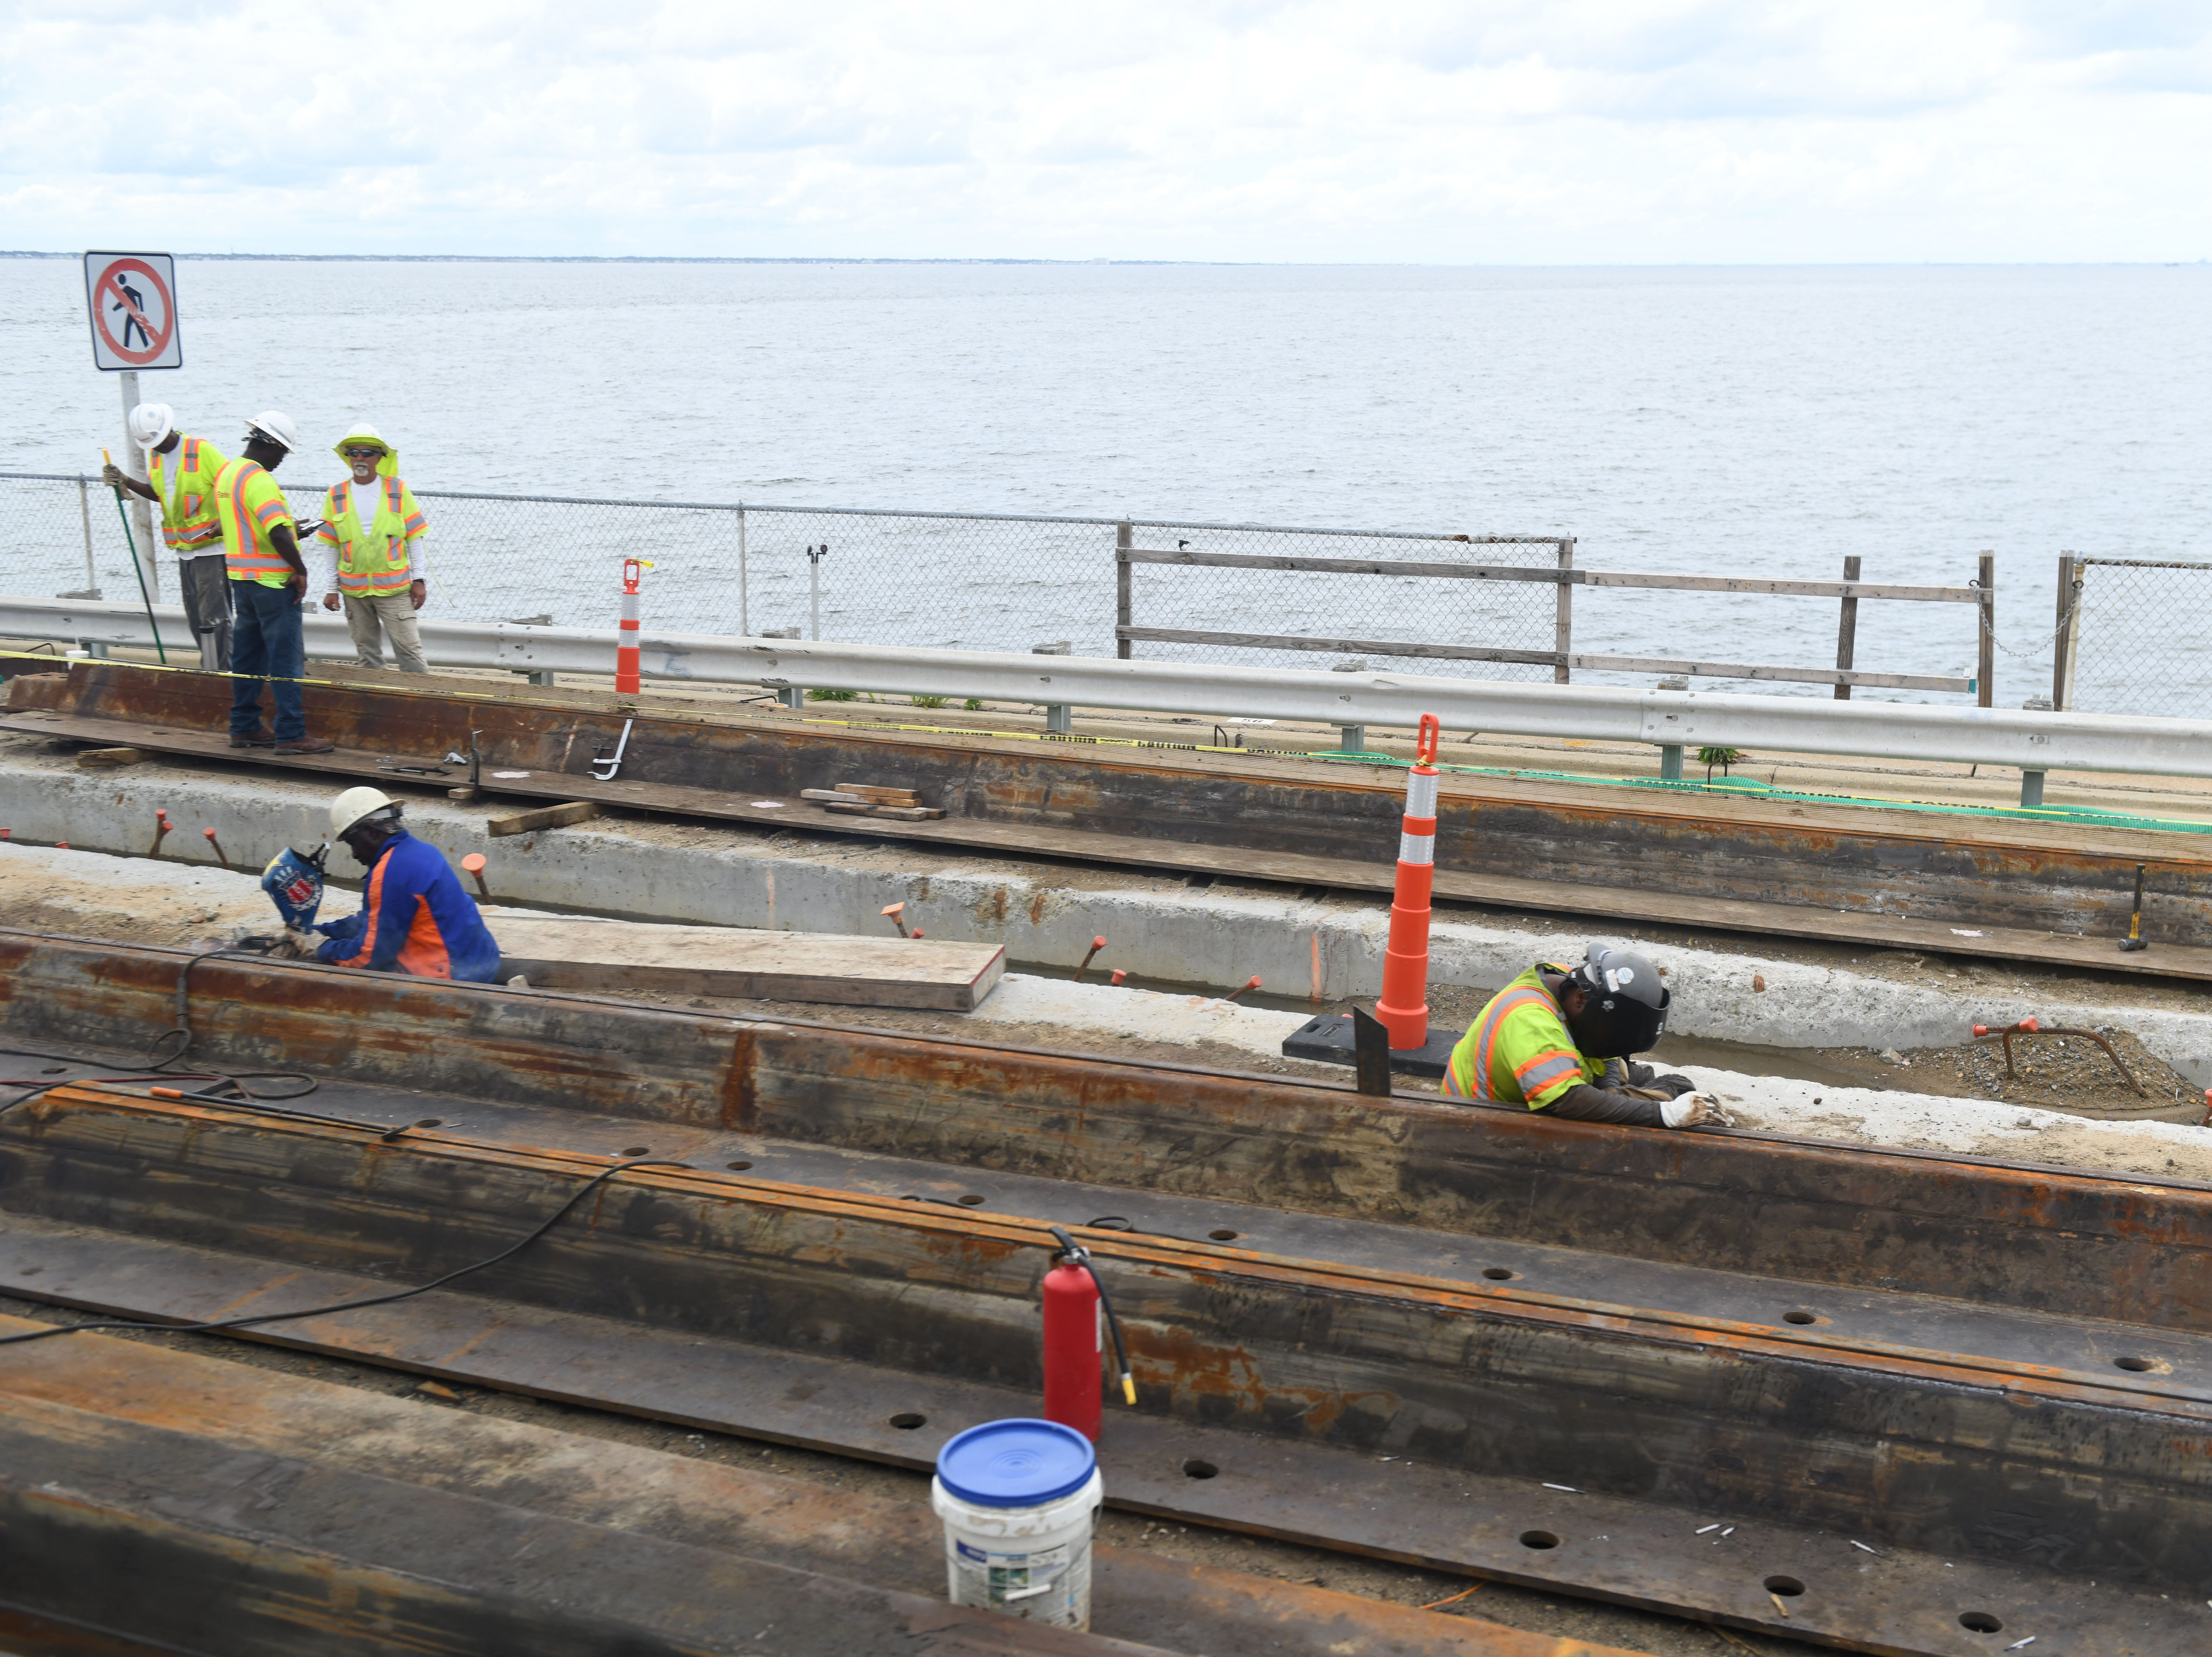 The Chesapeake Bay Bridge Tunnel is currently working on the Parallel Thimble Shoal Tunnel Project. It will construct a new two-lane tunnel under Thimble Shoal Channel.  When complete, the new tunnel will carry two lanes of traffic southbound and the existing tunnel will carry two lanes of traffic northbound.